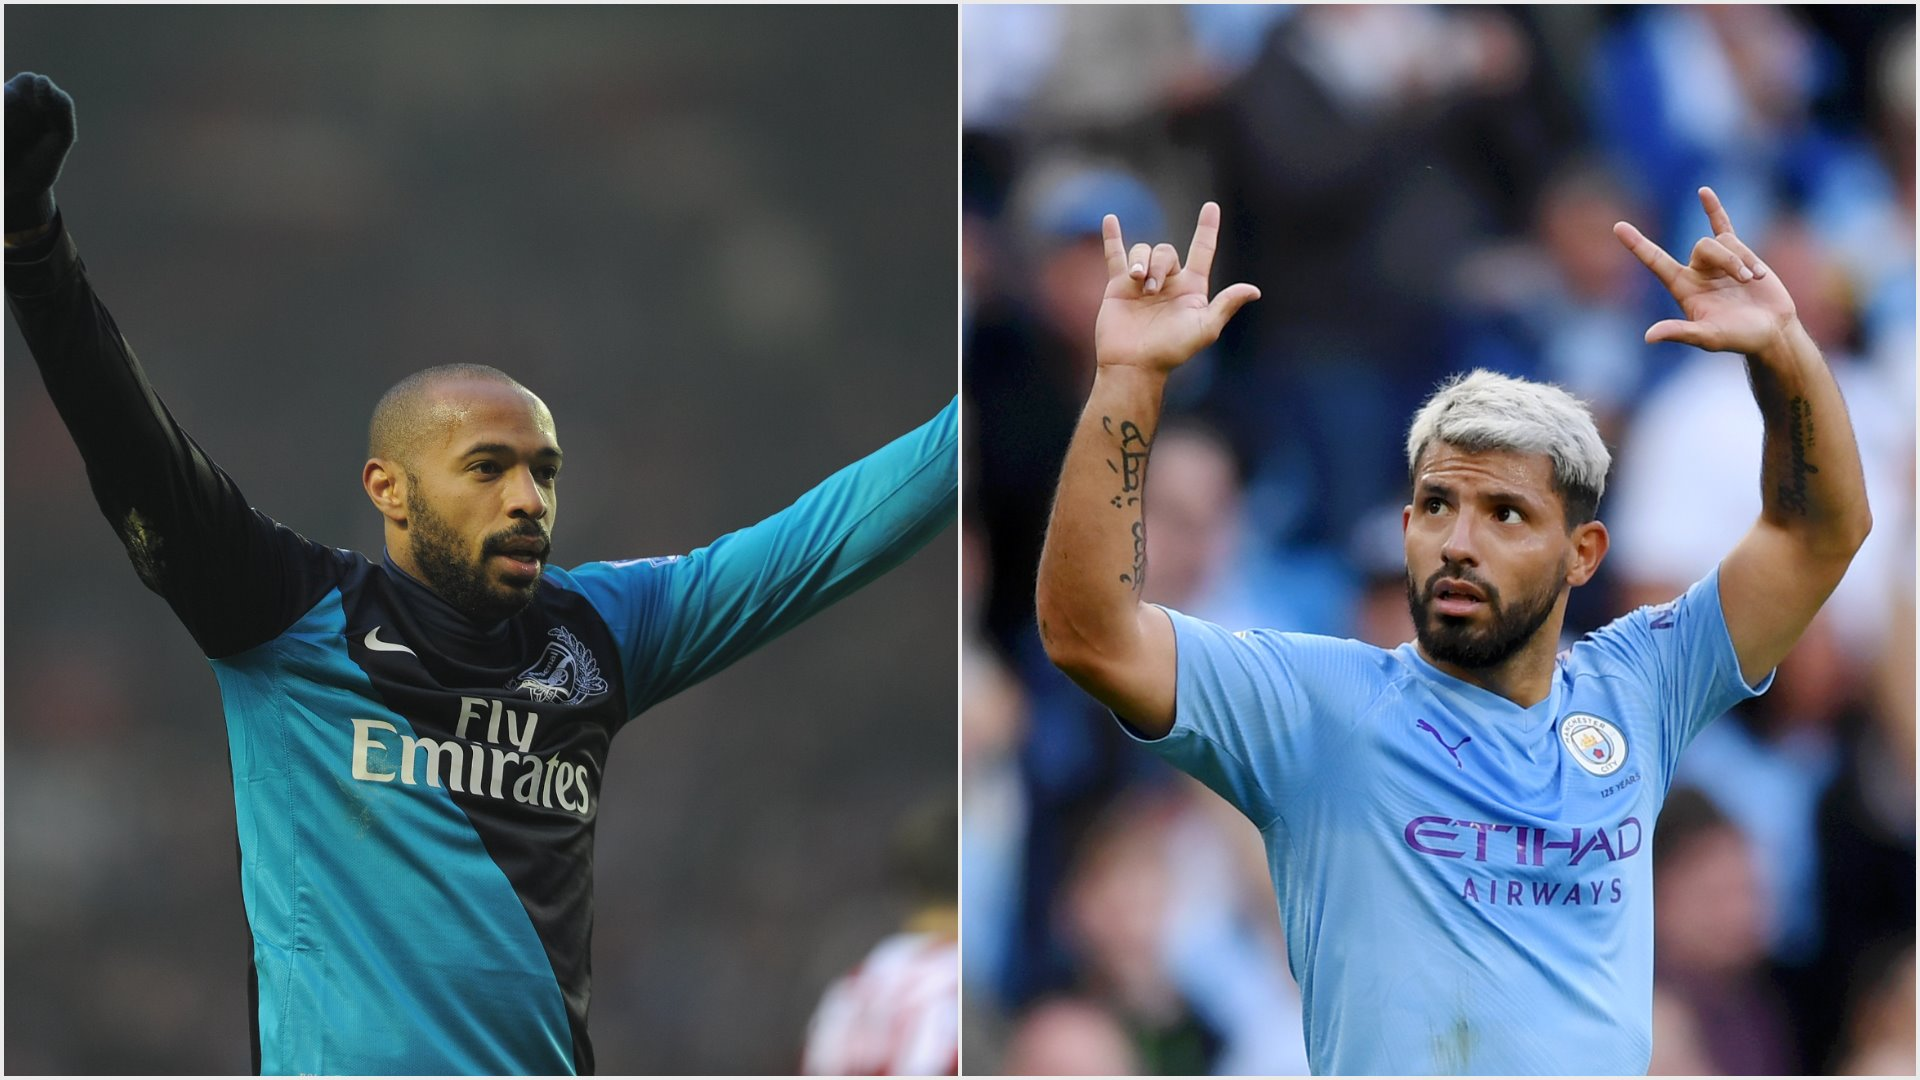 Sergio Aguero has surpassed Thierry Henry as the leading overseas goalscorer in the Premier League. We compare two phenomenal strikers.